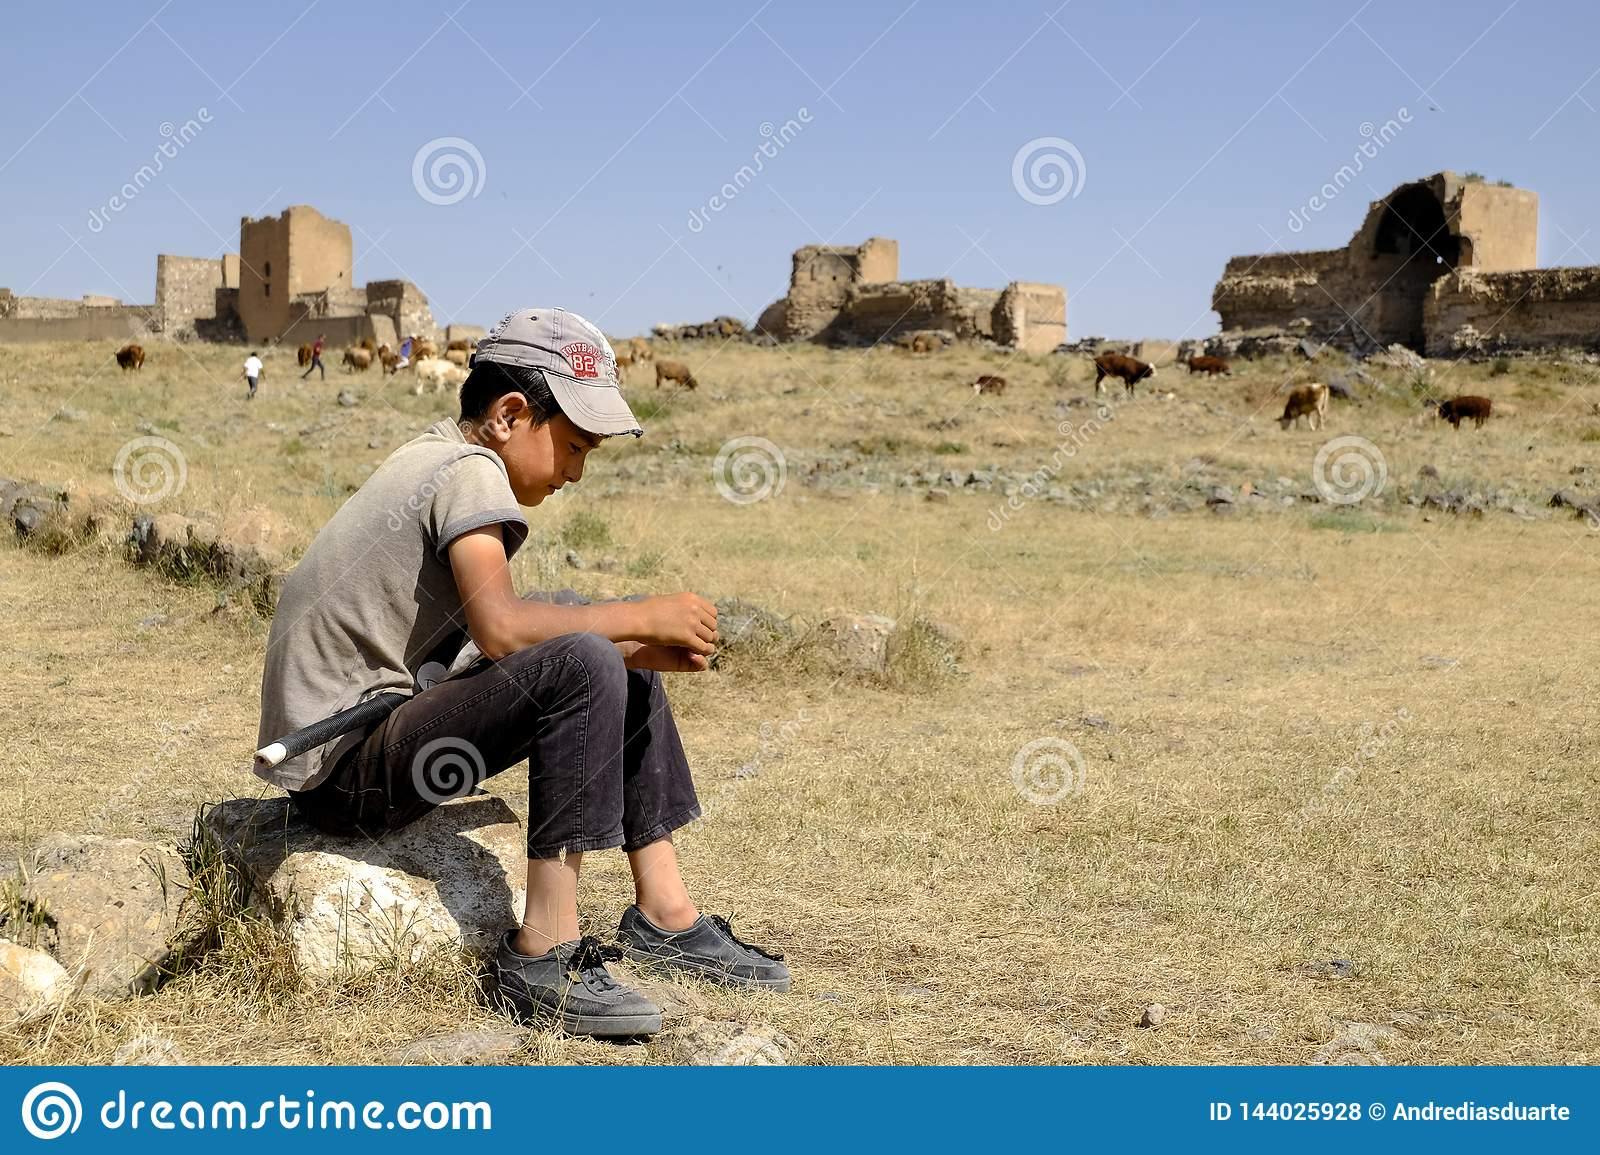 Shepherd kid waiting for the cows to graze